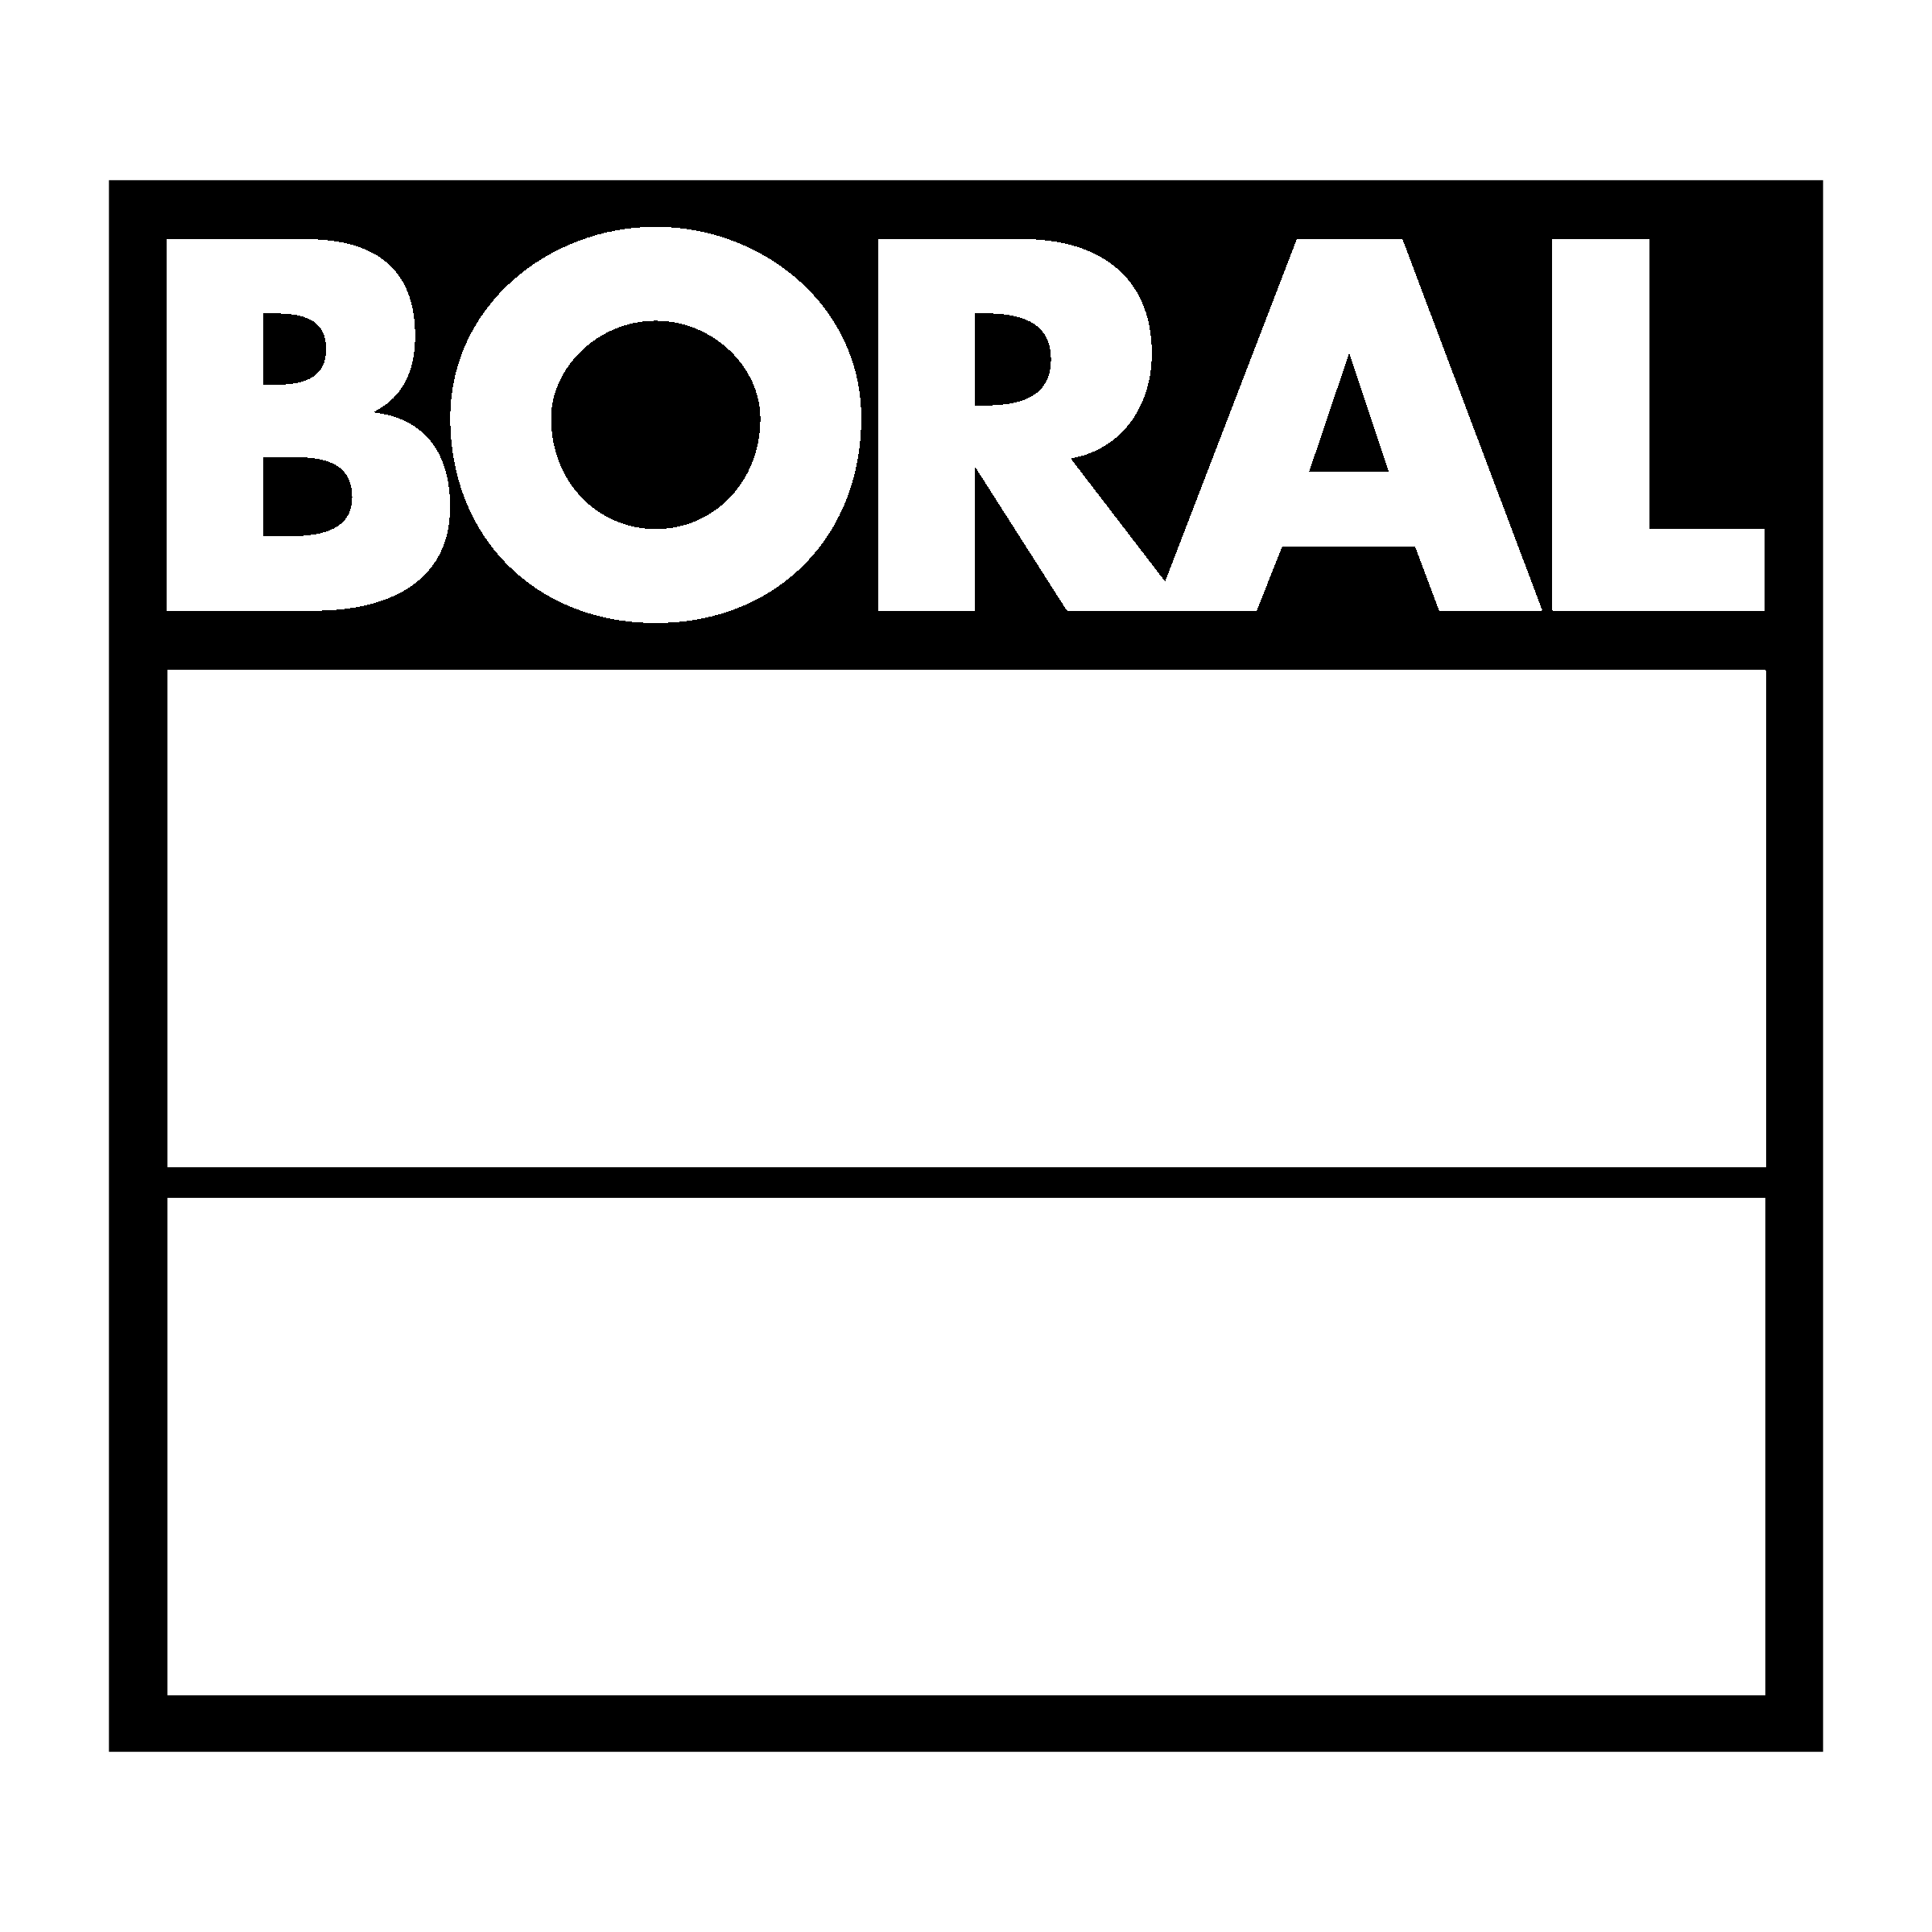 boral-logo-black-and-white